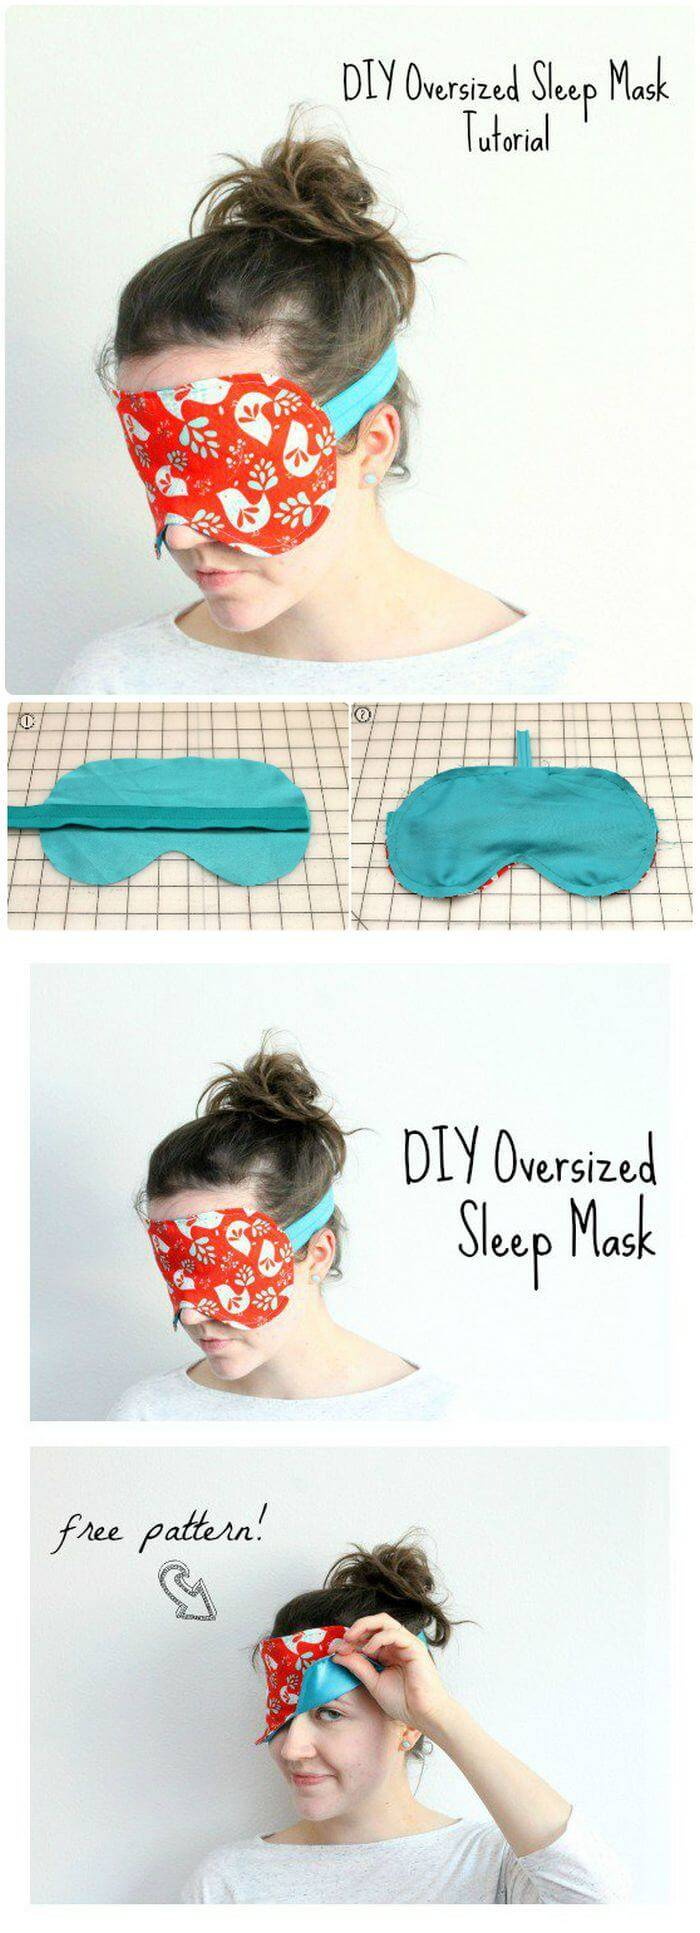 Oversized Sleep Mask